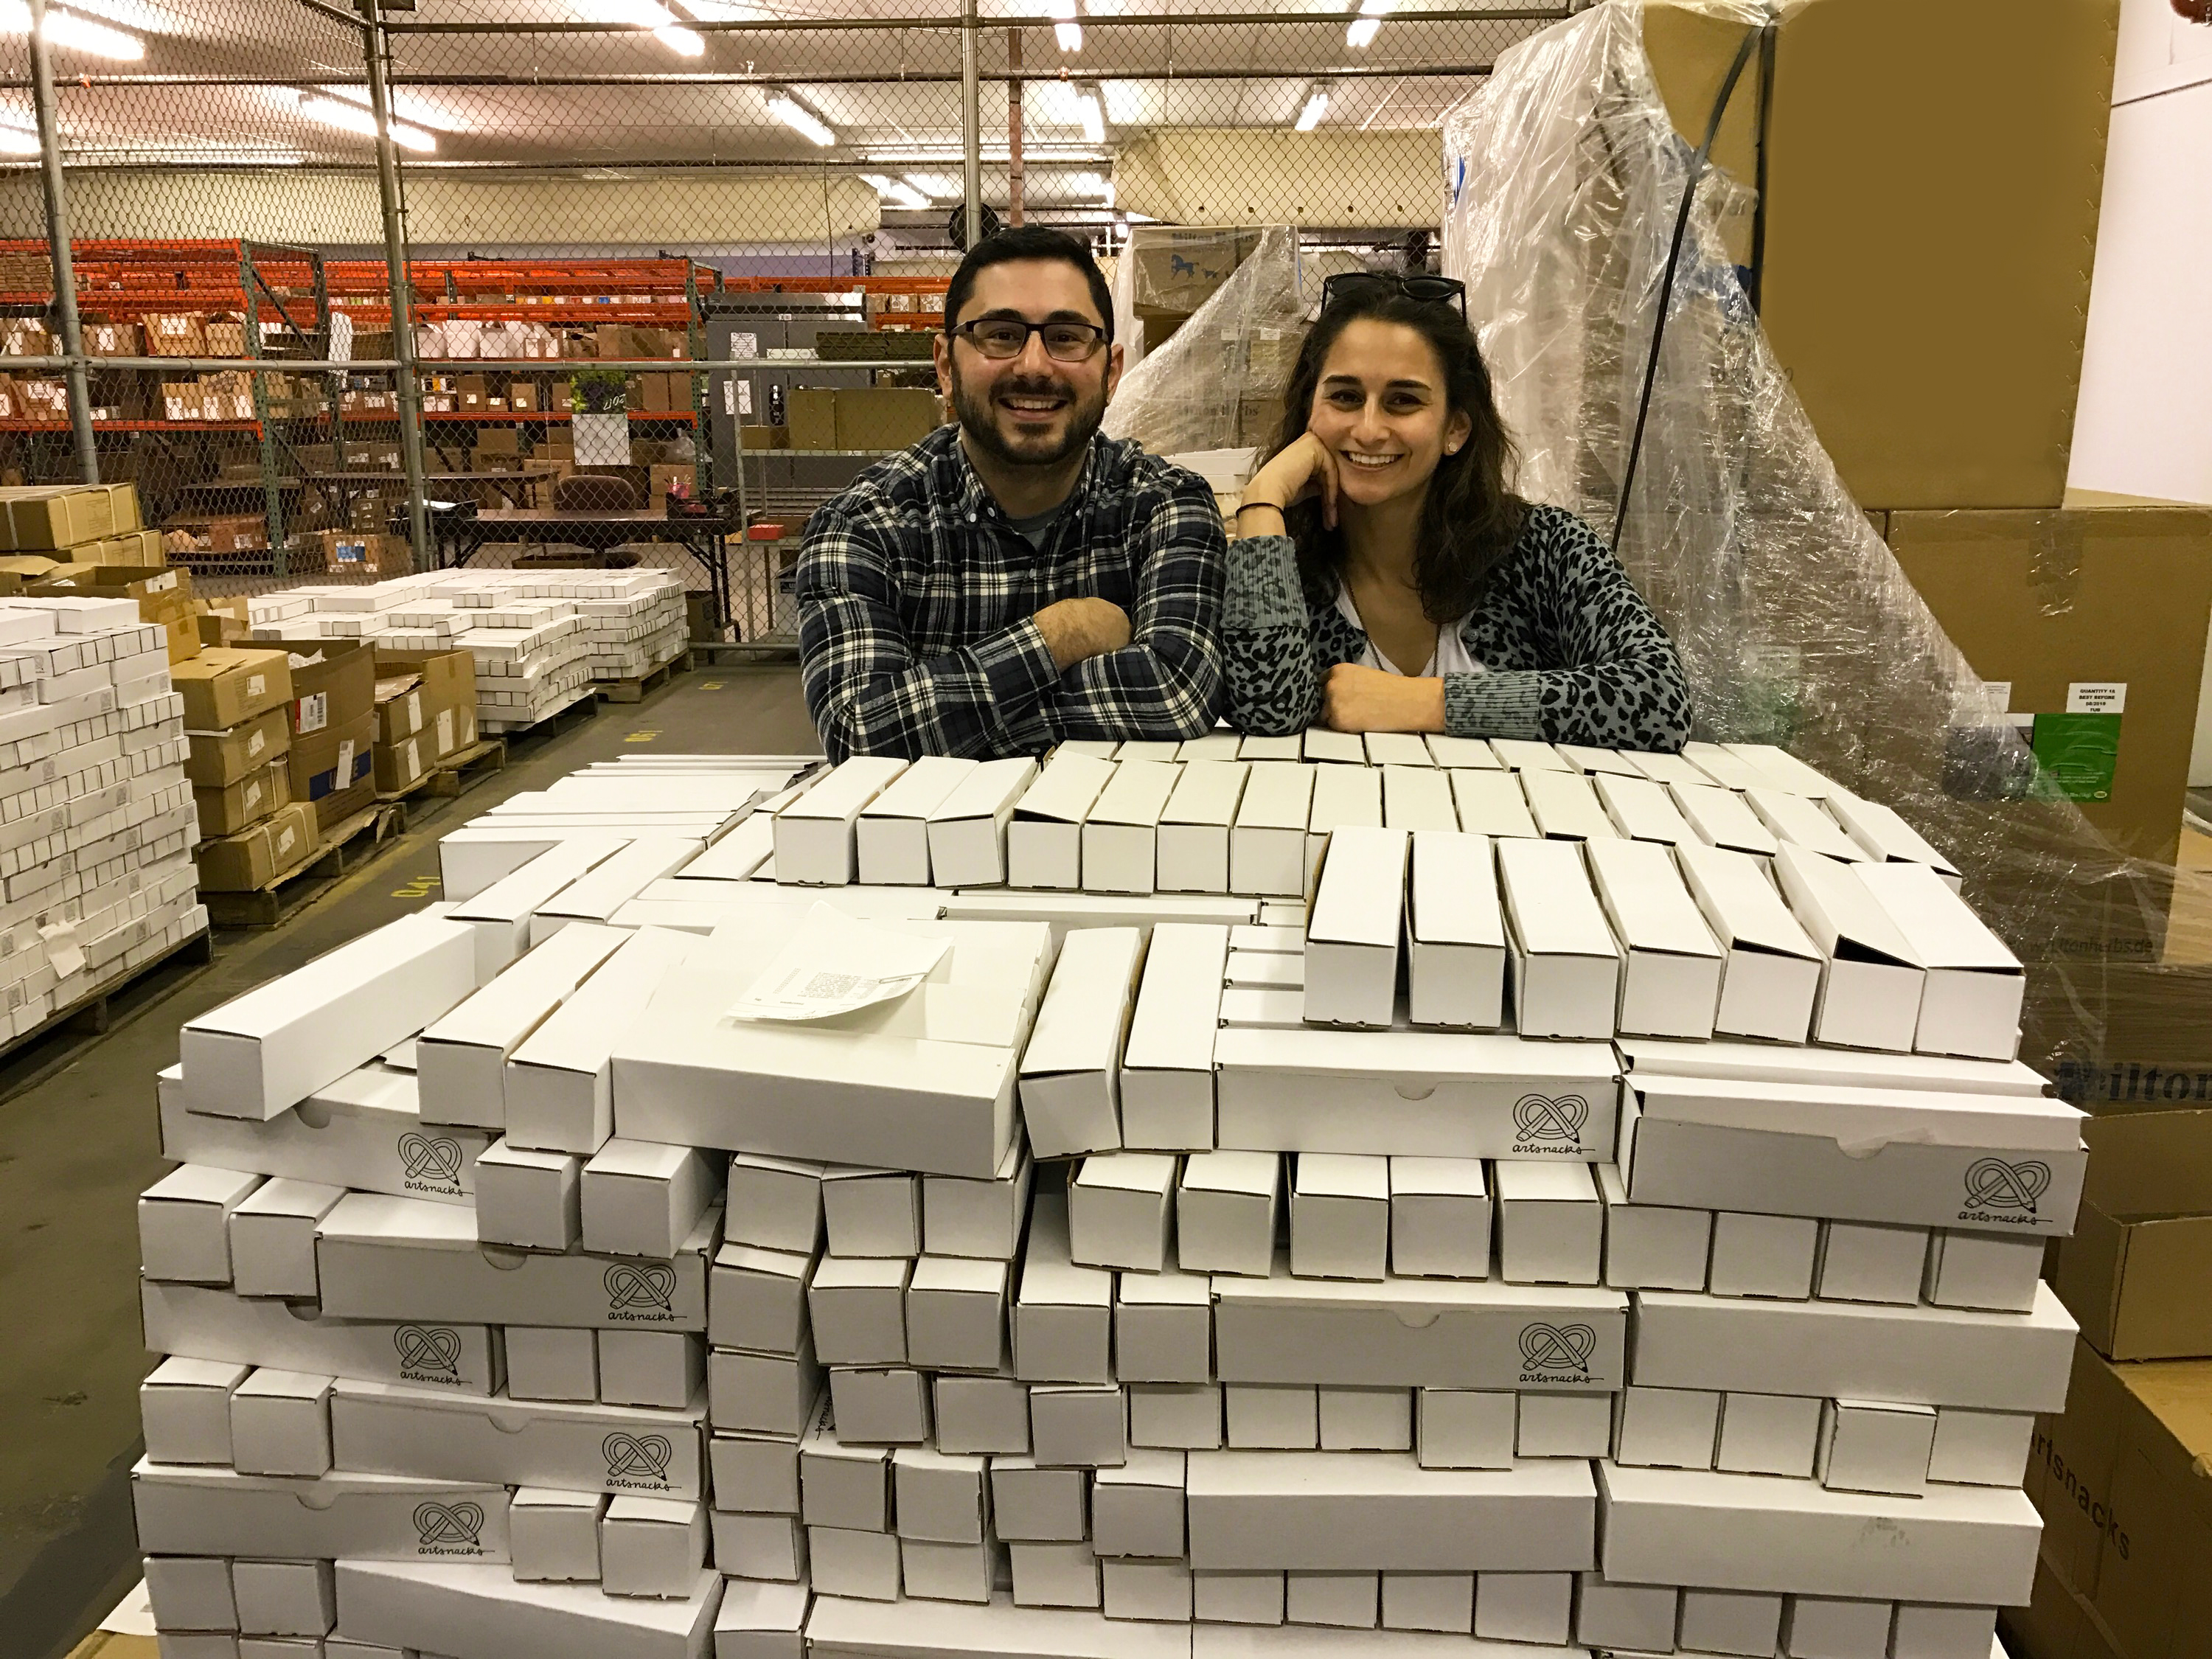 Sarah and Lee pose next to a large shipping pallet of ArtSnacks boxes.